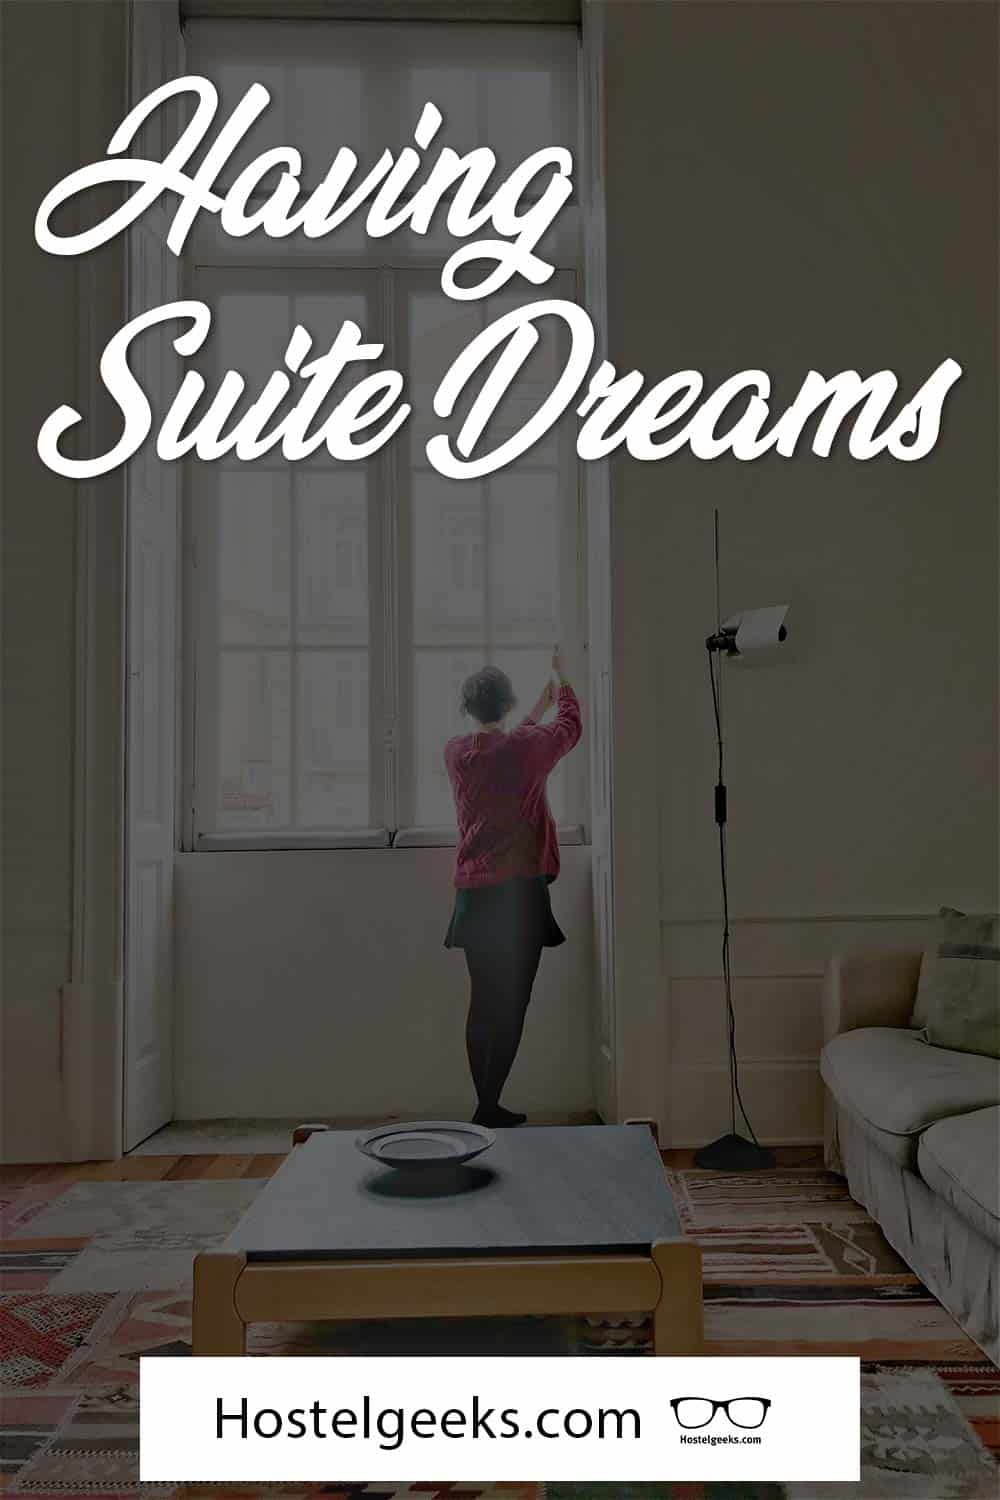 Having suite dreams.